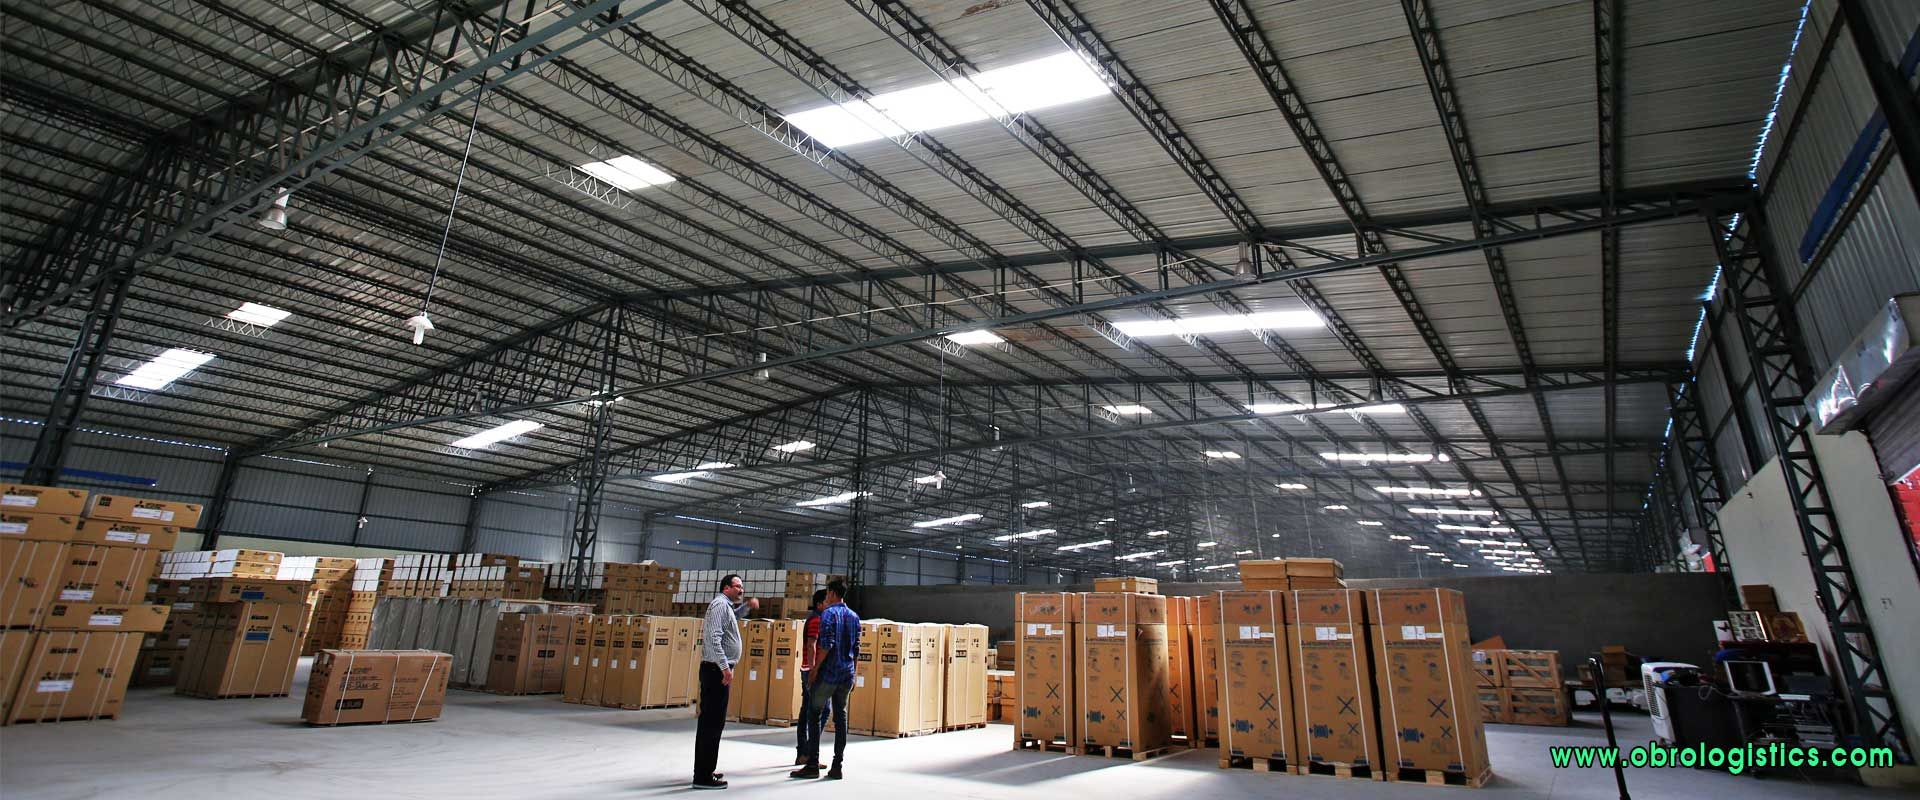 Commercial Godown On Rent Lease In Ludhiana Punjab Punjab Mobile 9915000173 Http Www Obrologistics Com Rent Lease Ludhiana